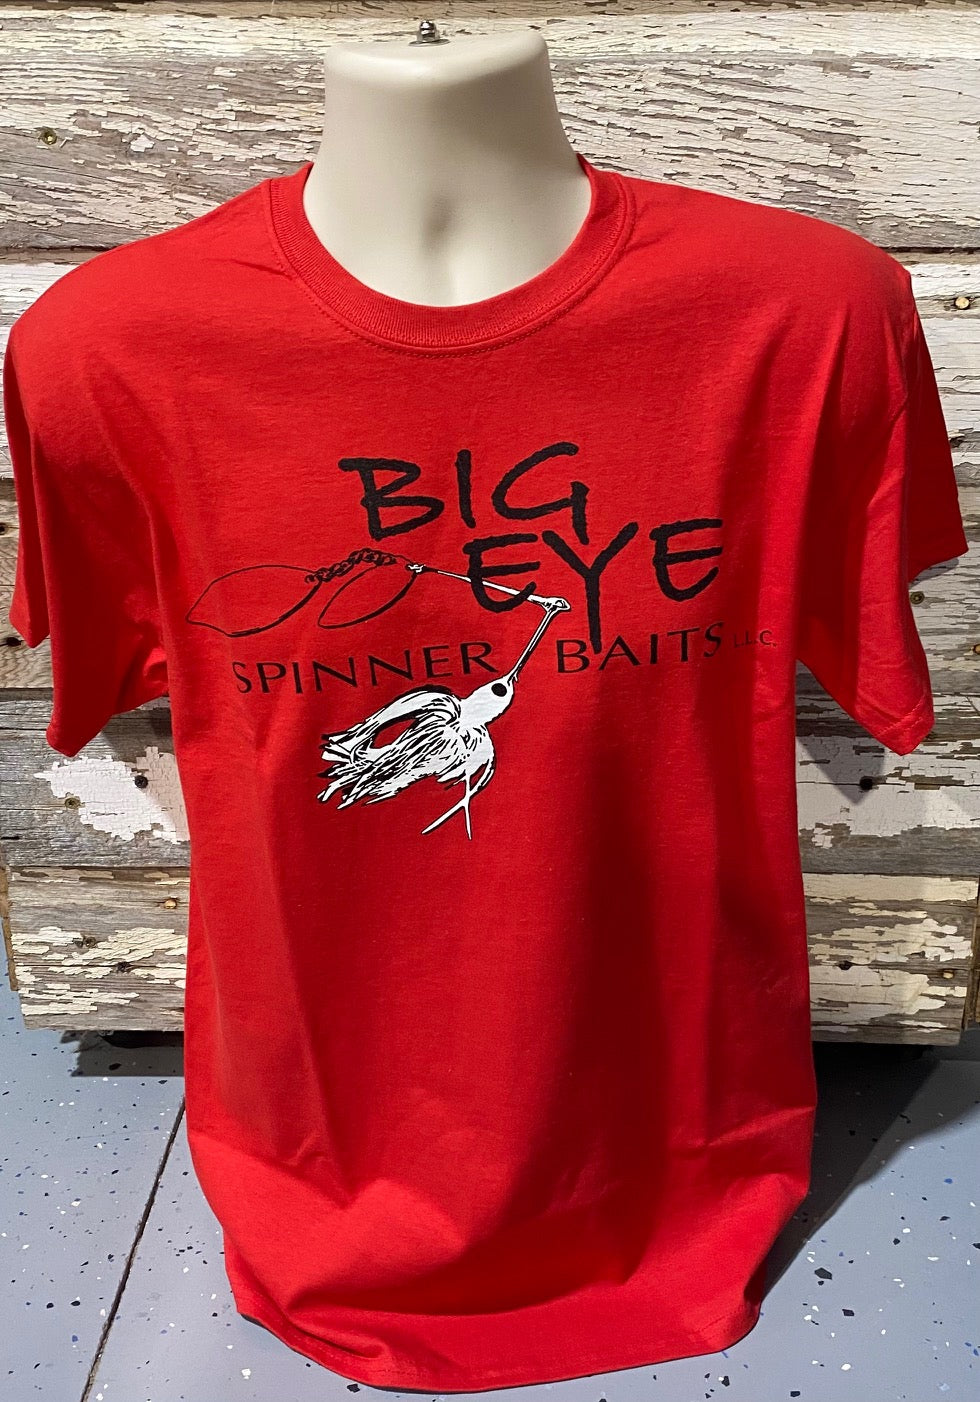 Red w/White Spinnerbait T-Shirt